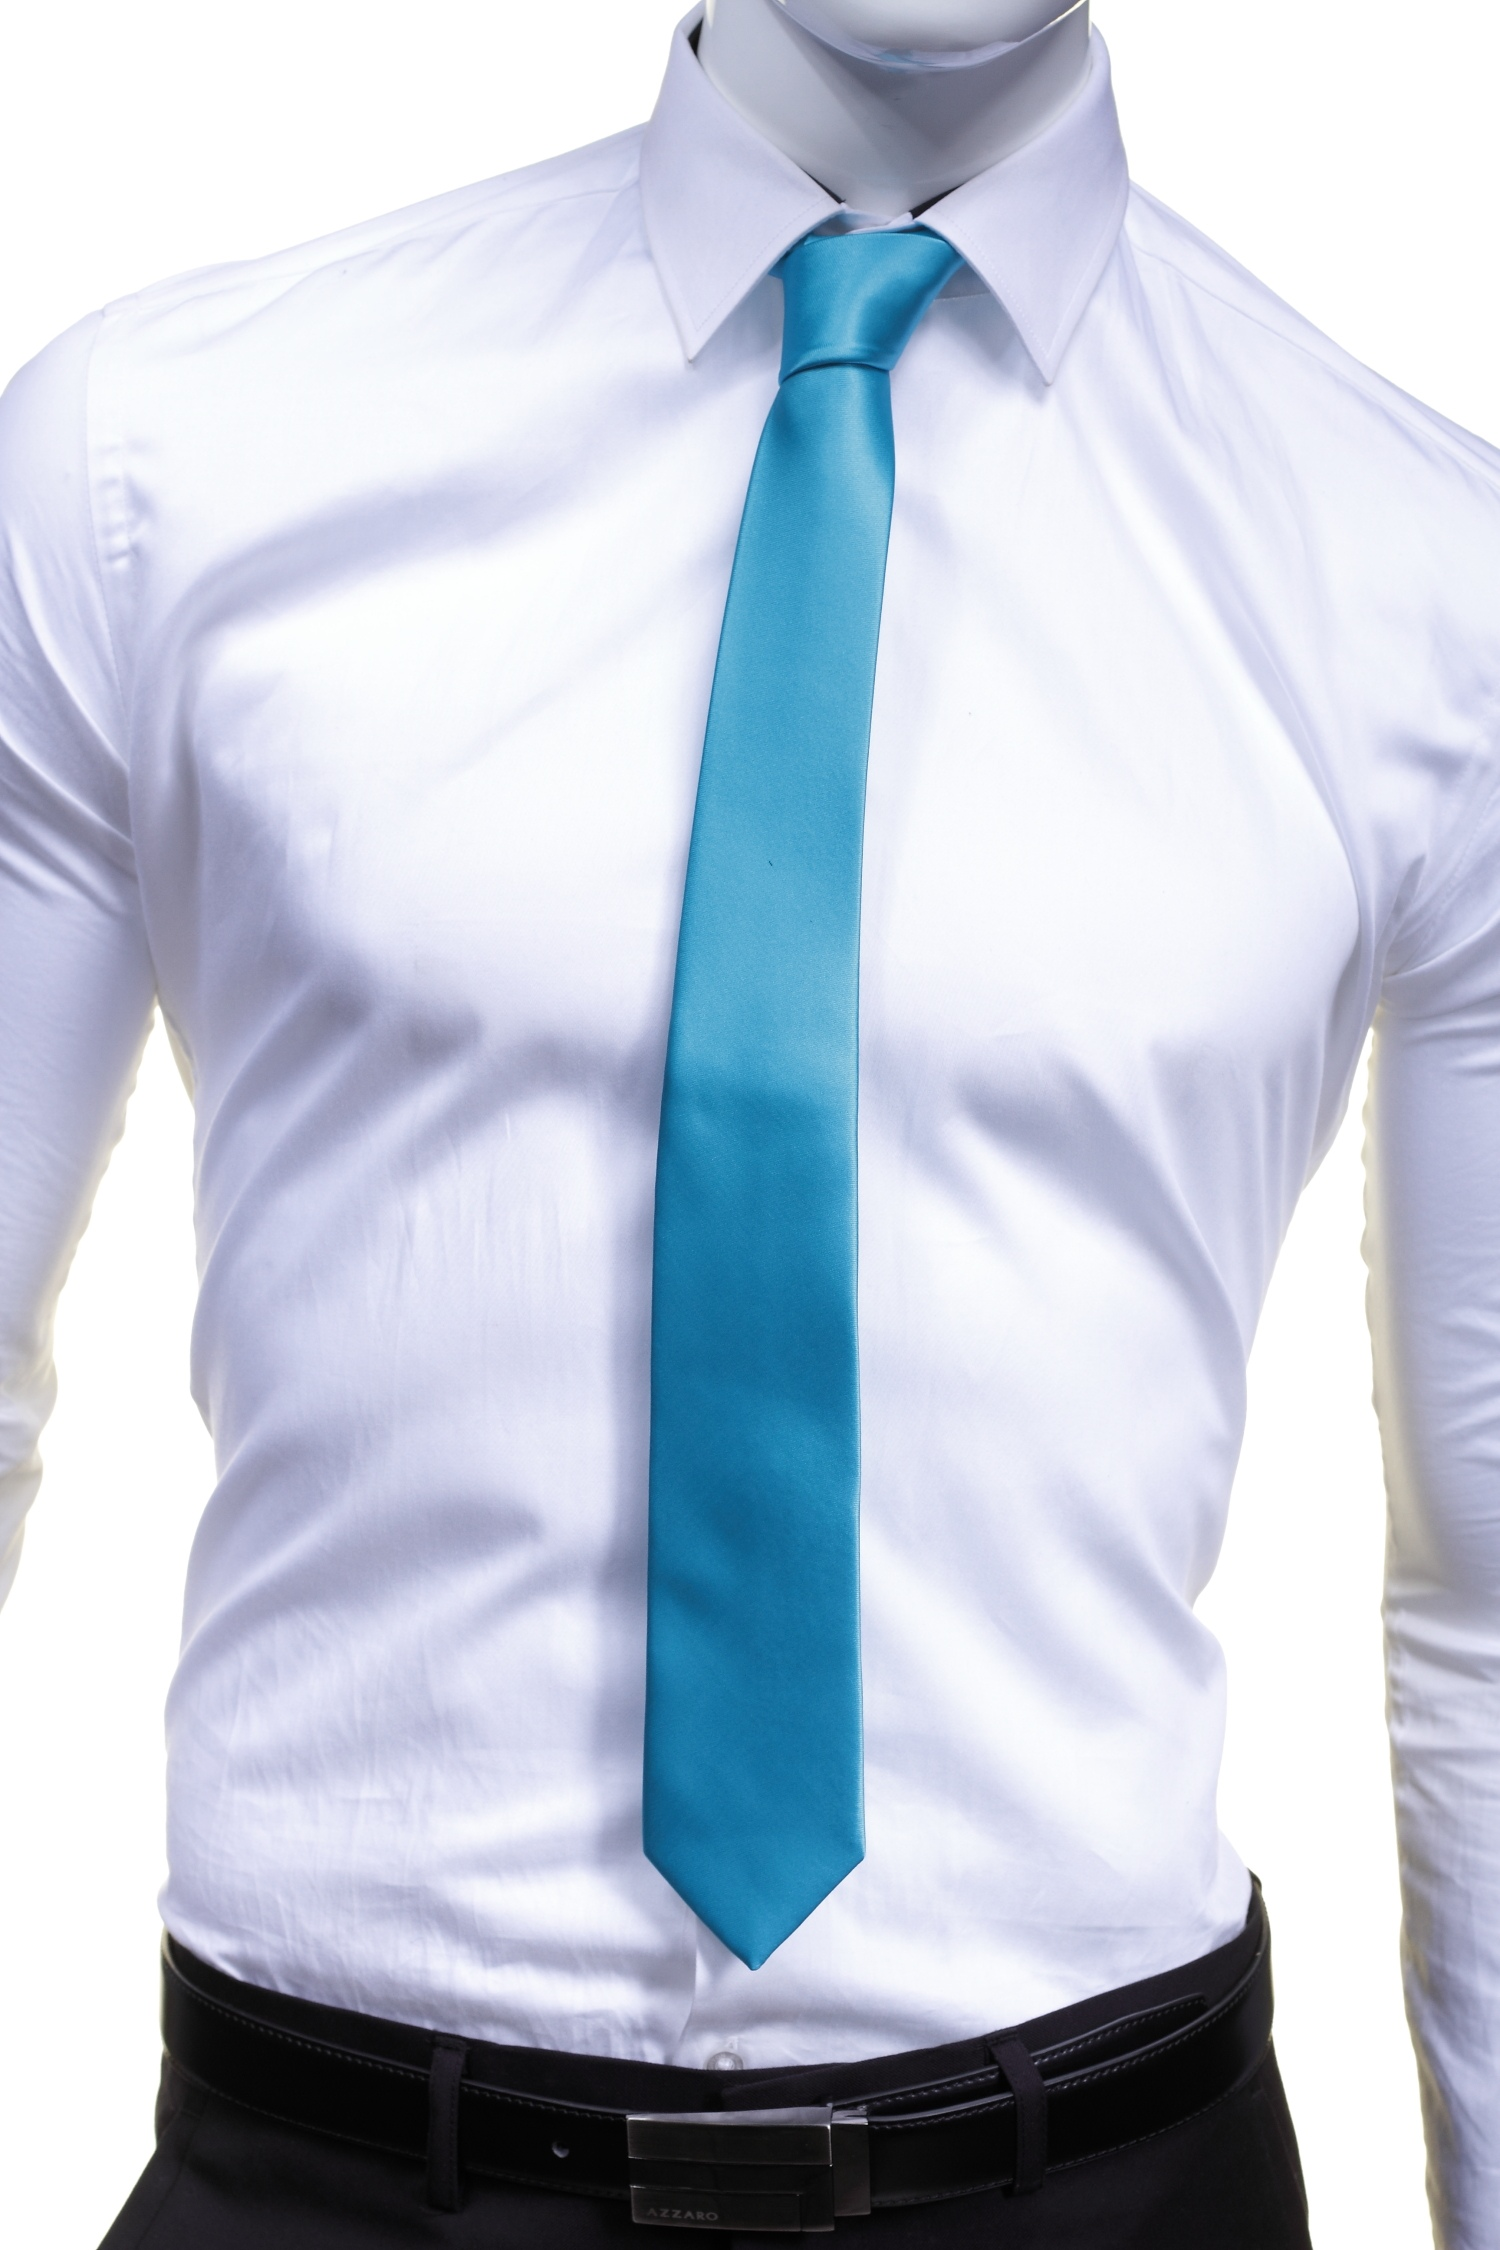 http://www.leadermode.com/78156/virtuose-uni-satin-slim-turquoise.jpg